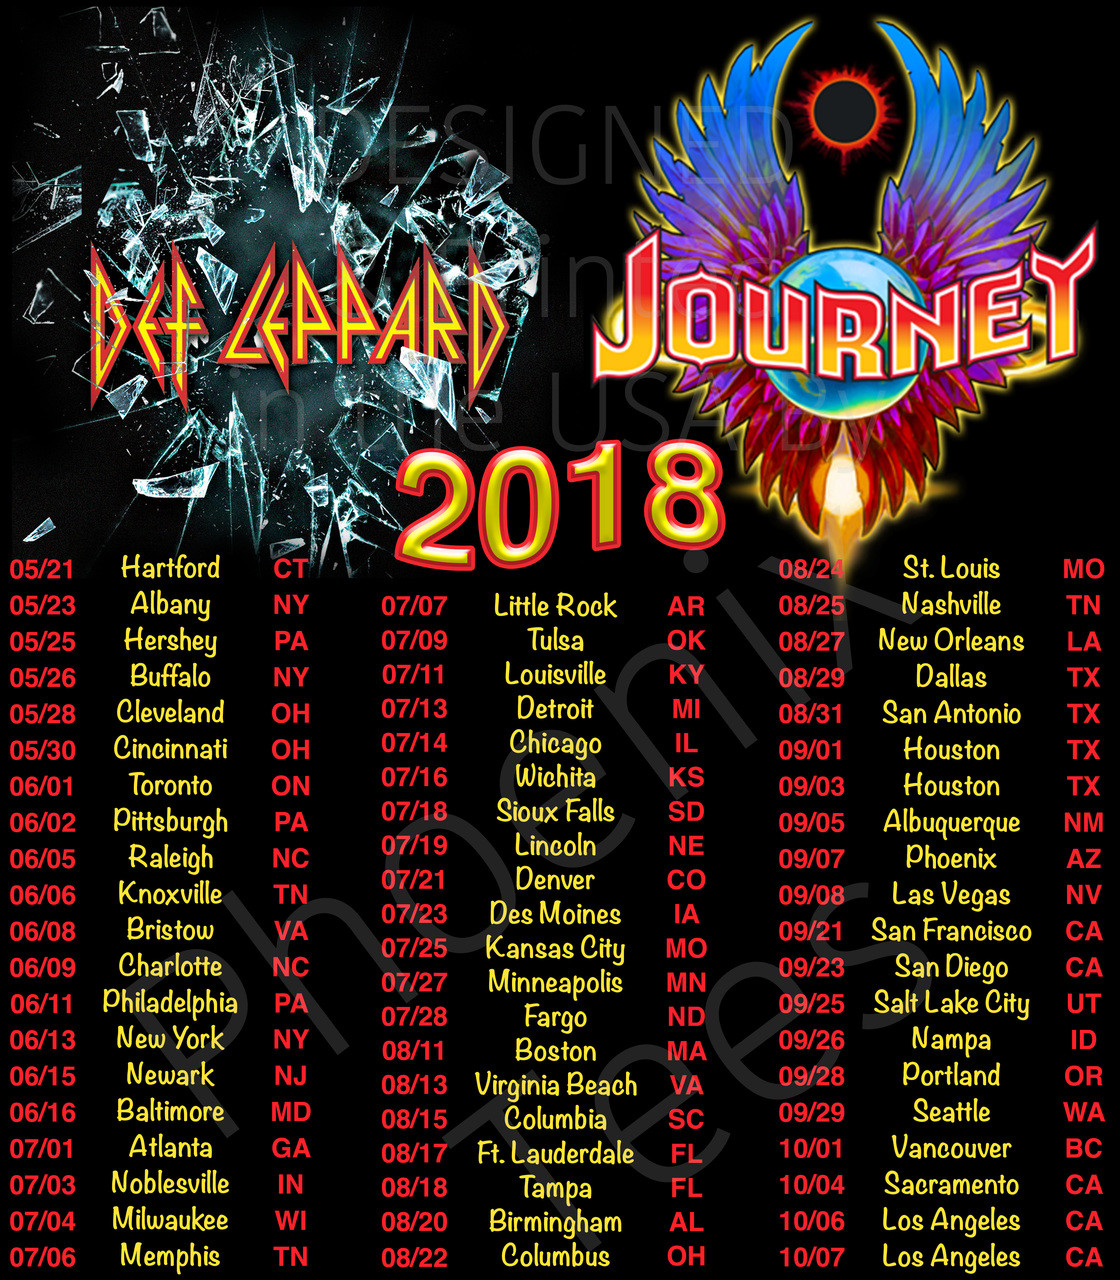 def leppard and journey 2018 concert tour - phoenix tees